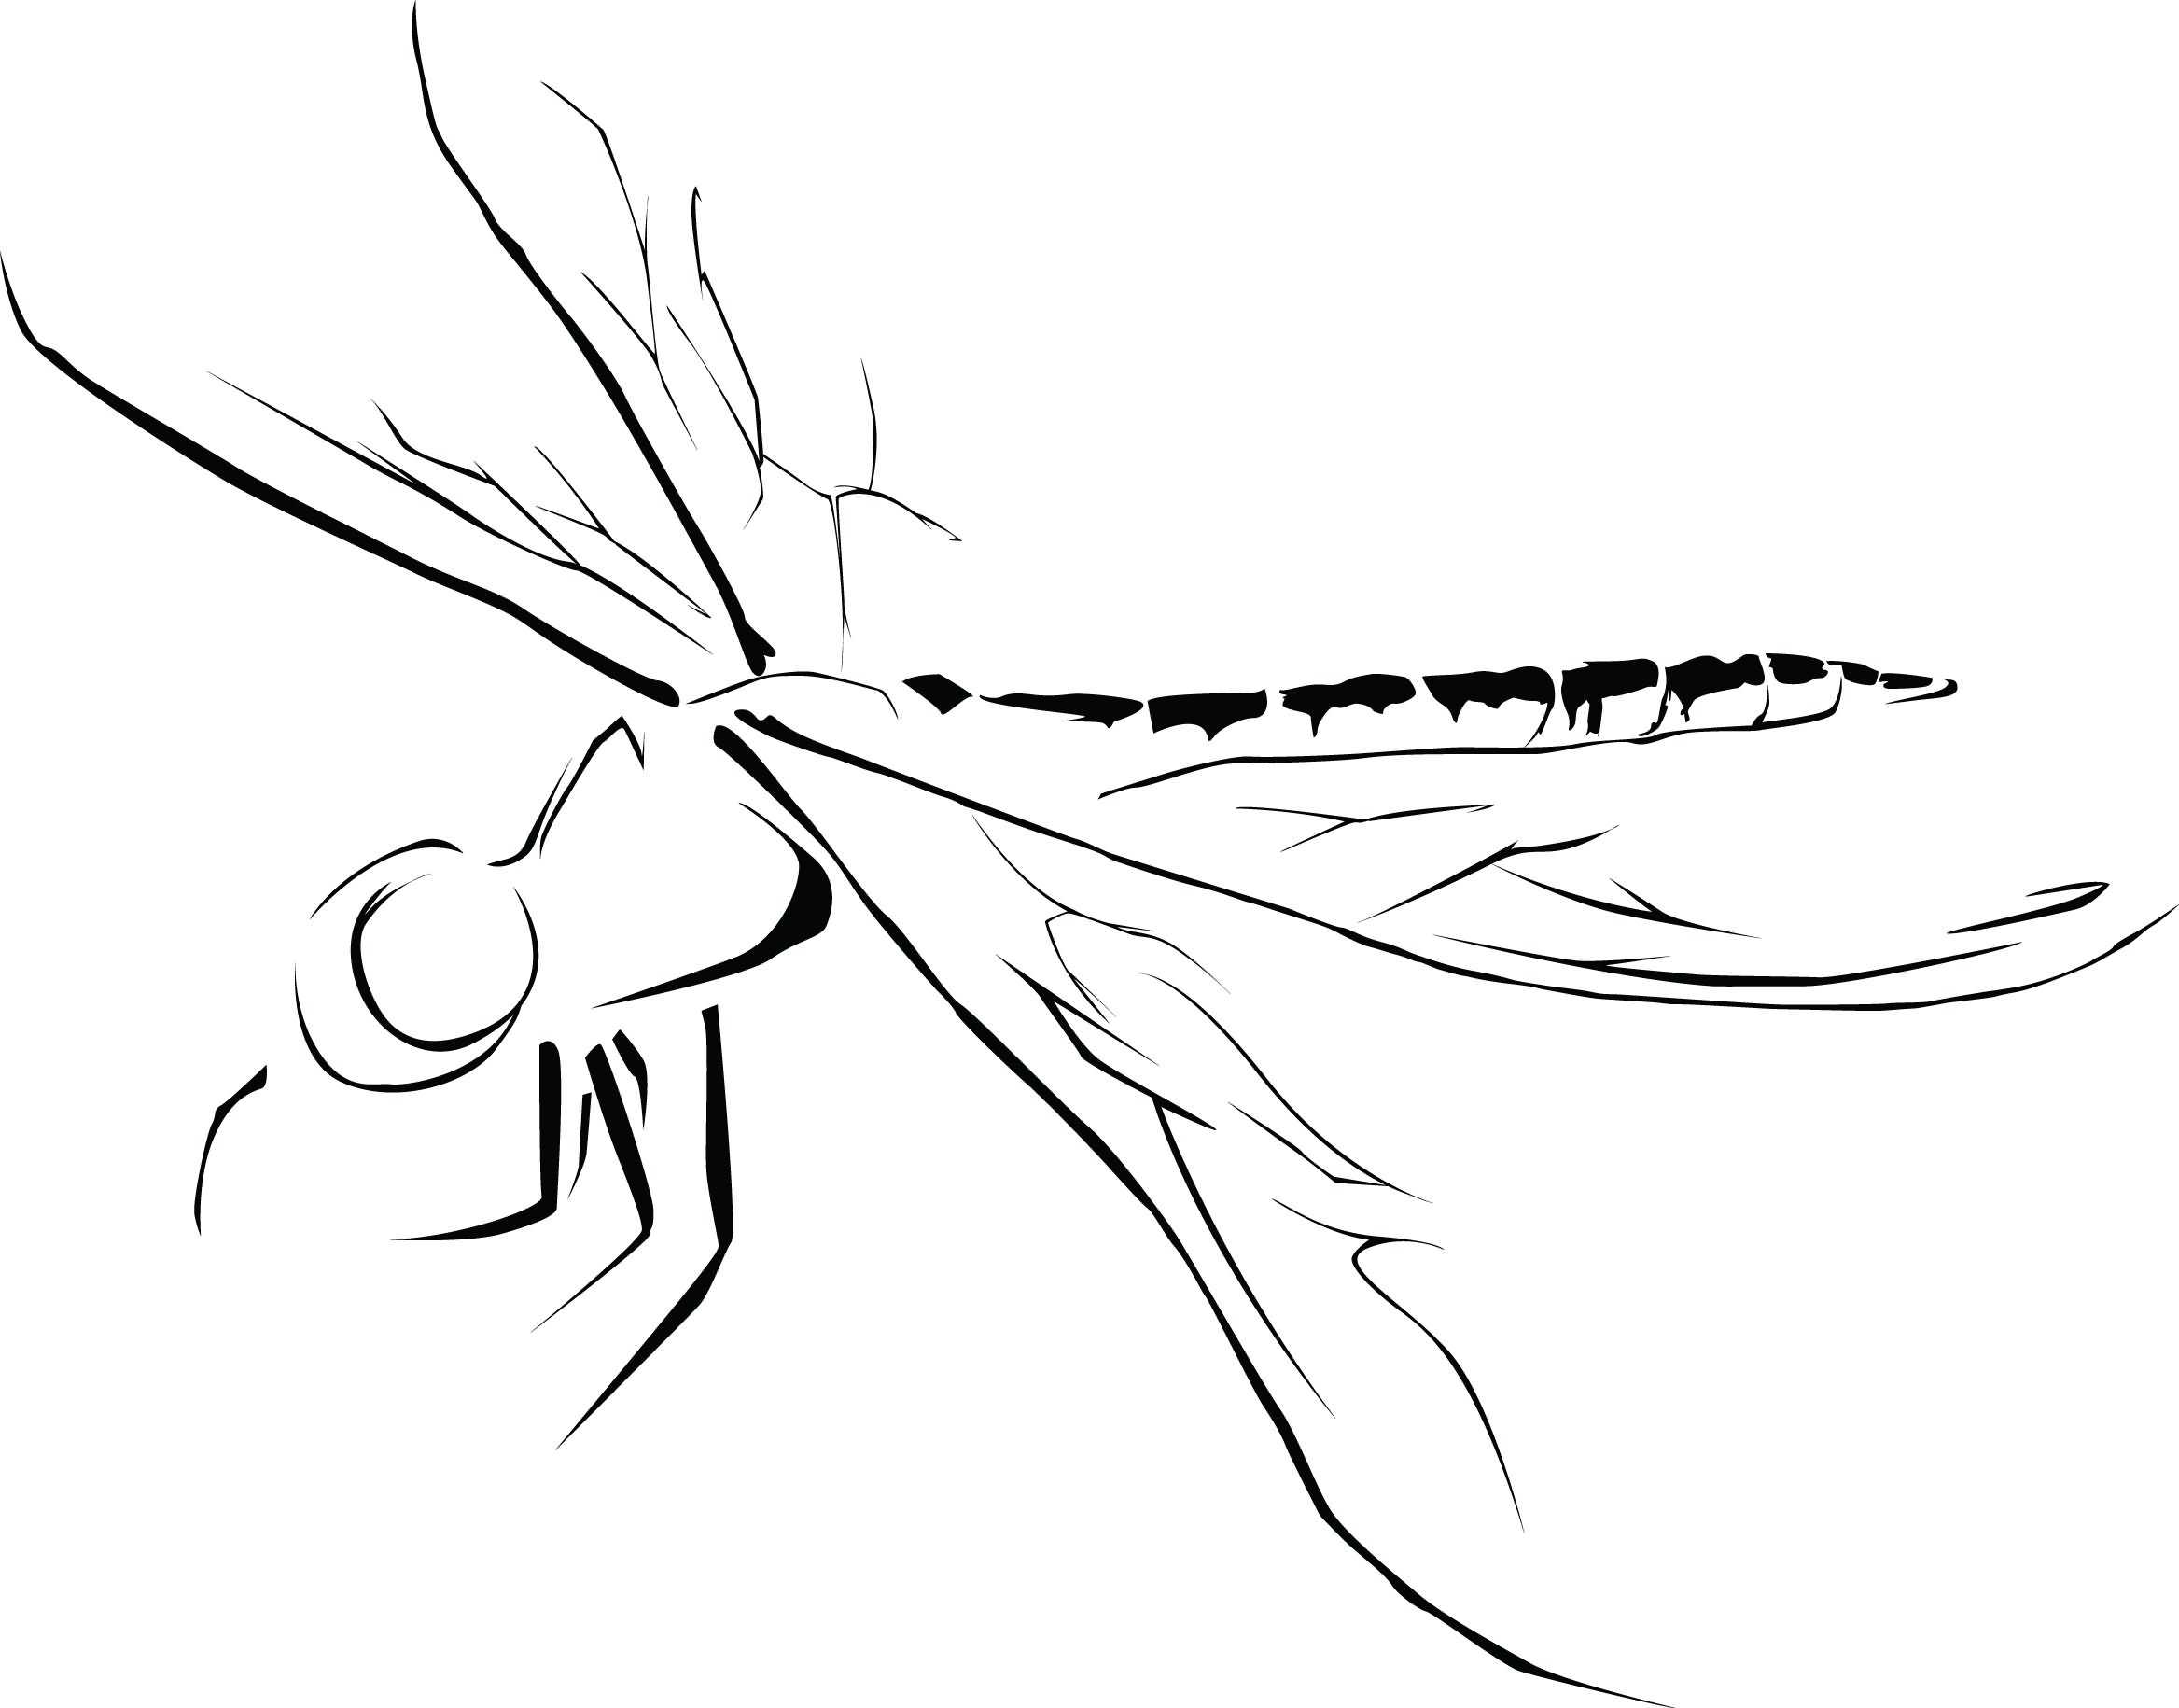 Dragonfly Tattoo Line Drawing : Simple outline flying dragonfly tattoo design